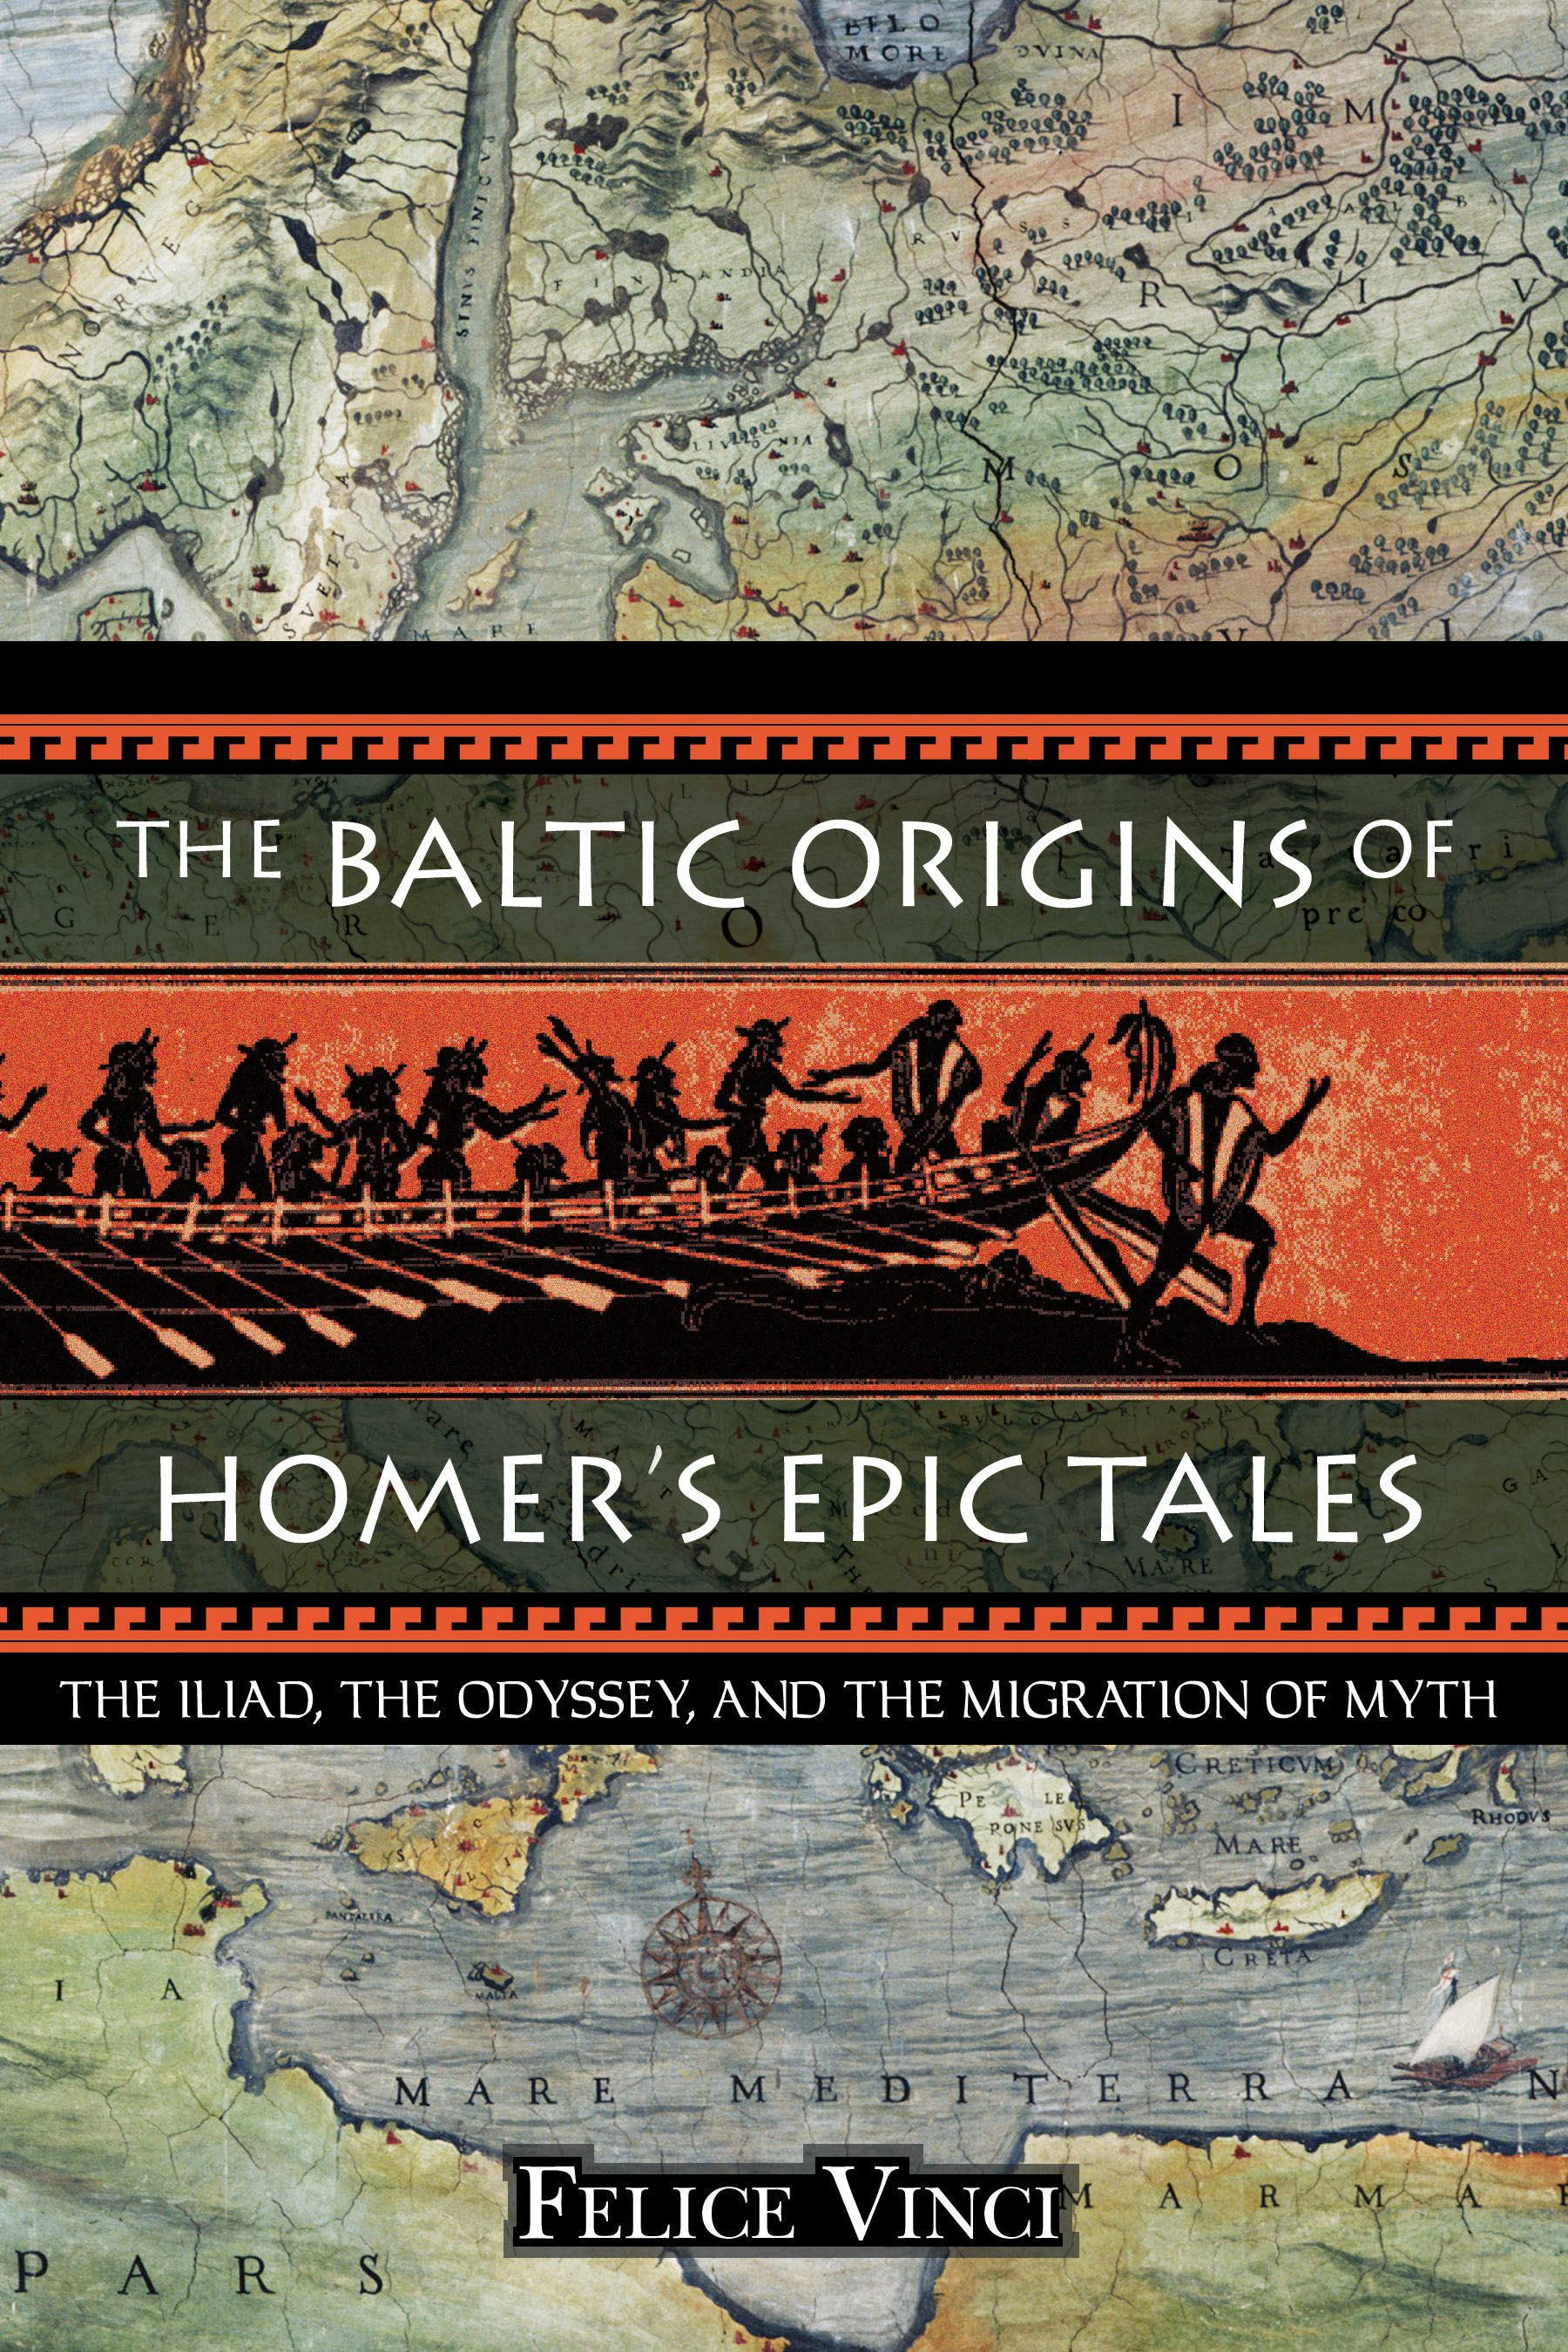 The baltic origins of homers epic tales 9781594770524 hr